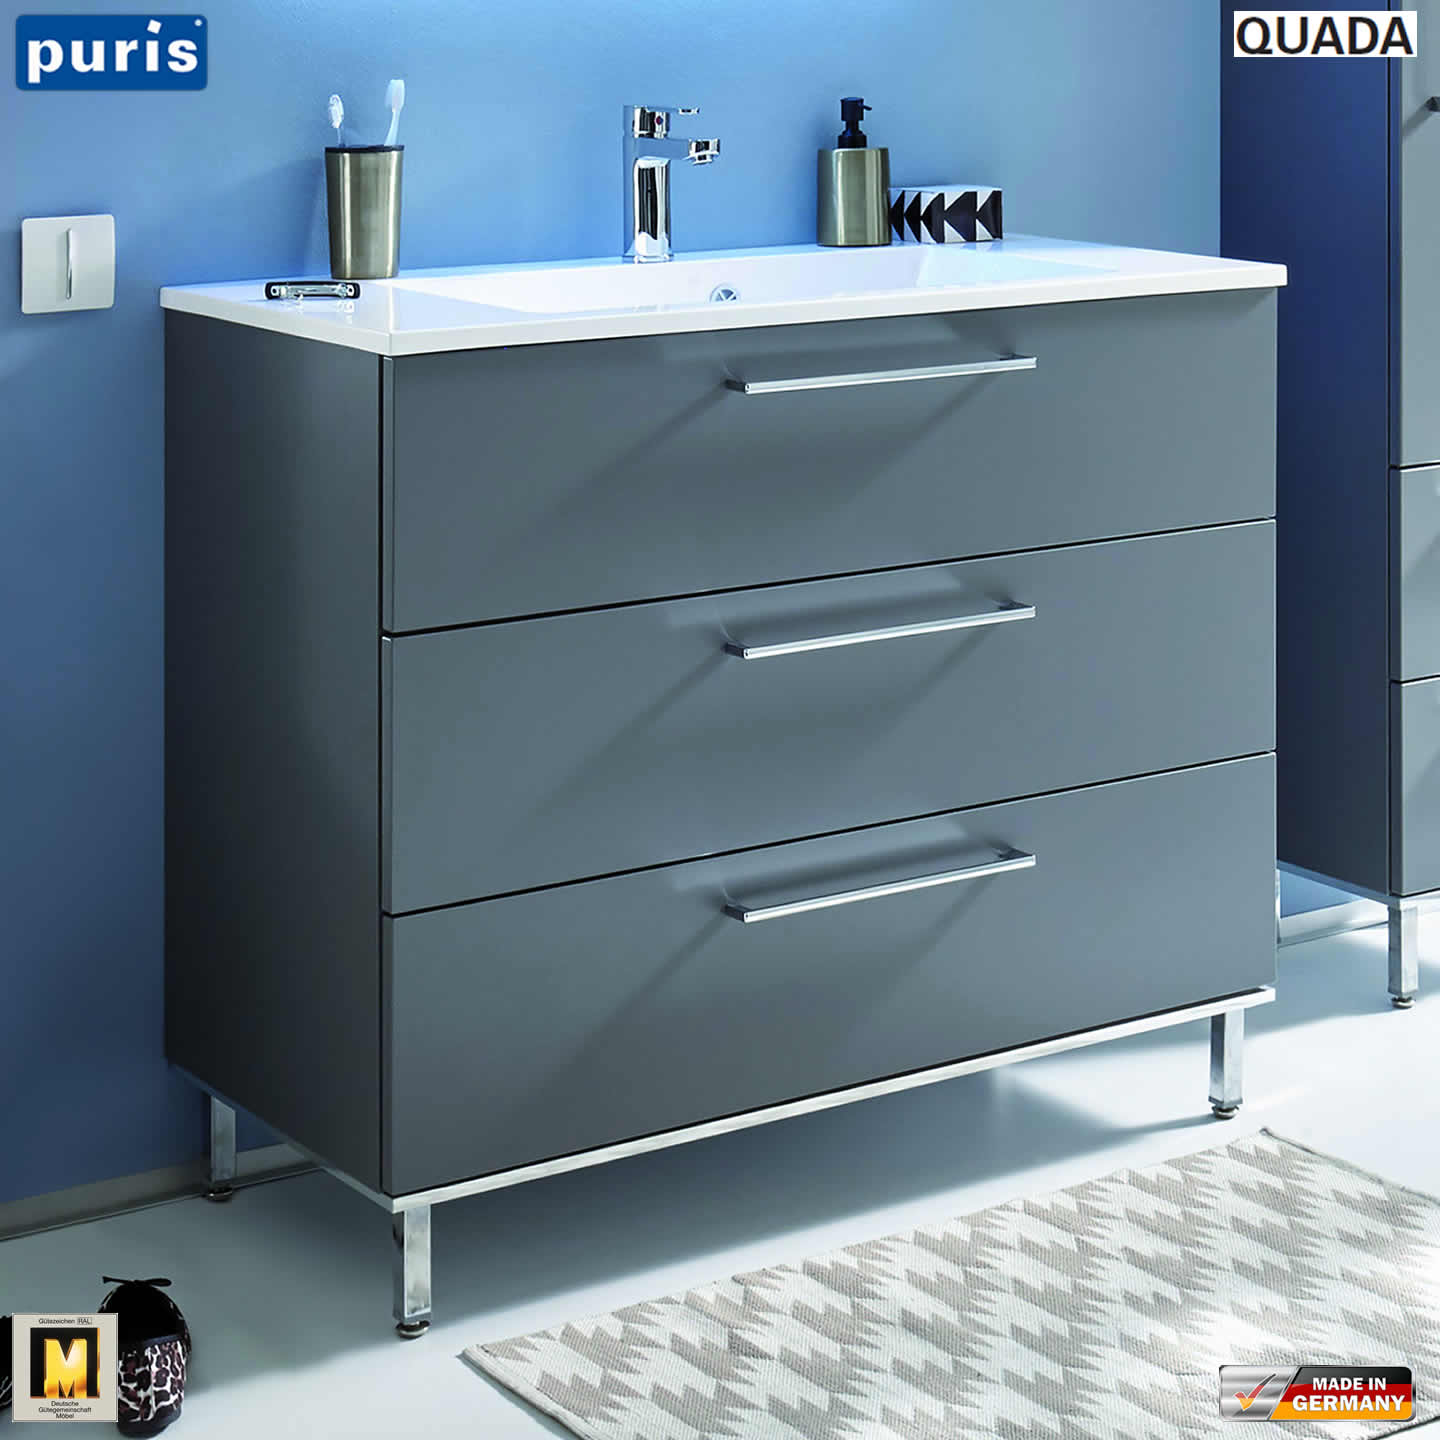 puris quada waschtisch set 100 cm mit mineralguss waschtisch impulsbad. Black Bedroom Furniture Sets. Home Design Ideas